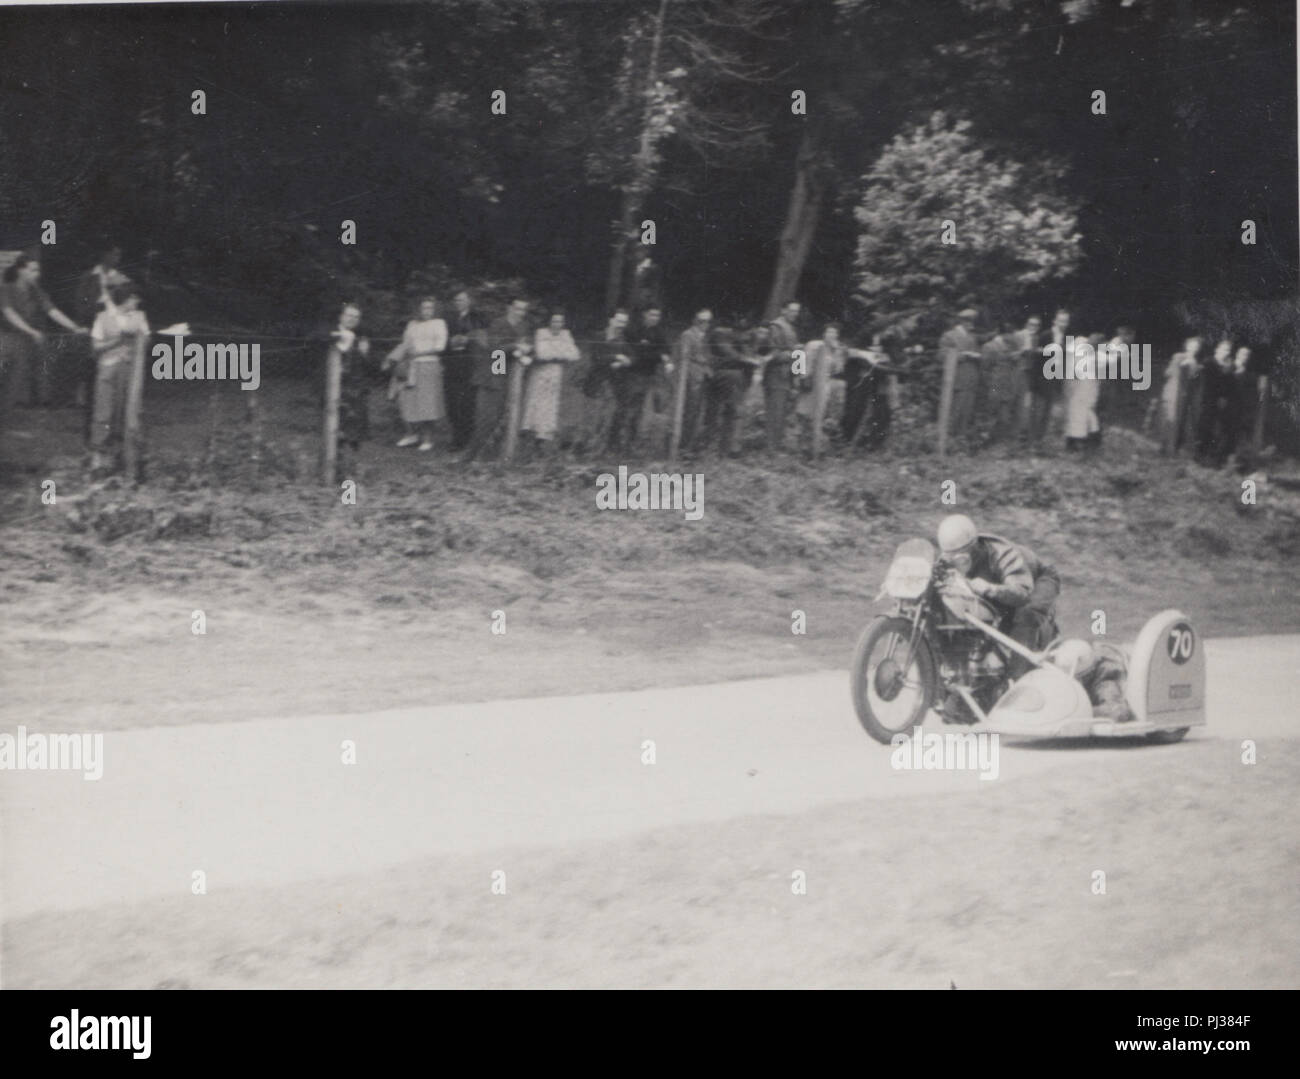 C Gray Motorcycle with Rider